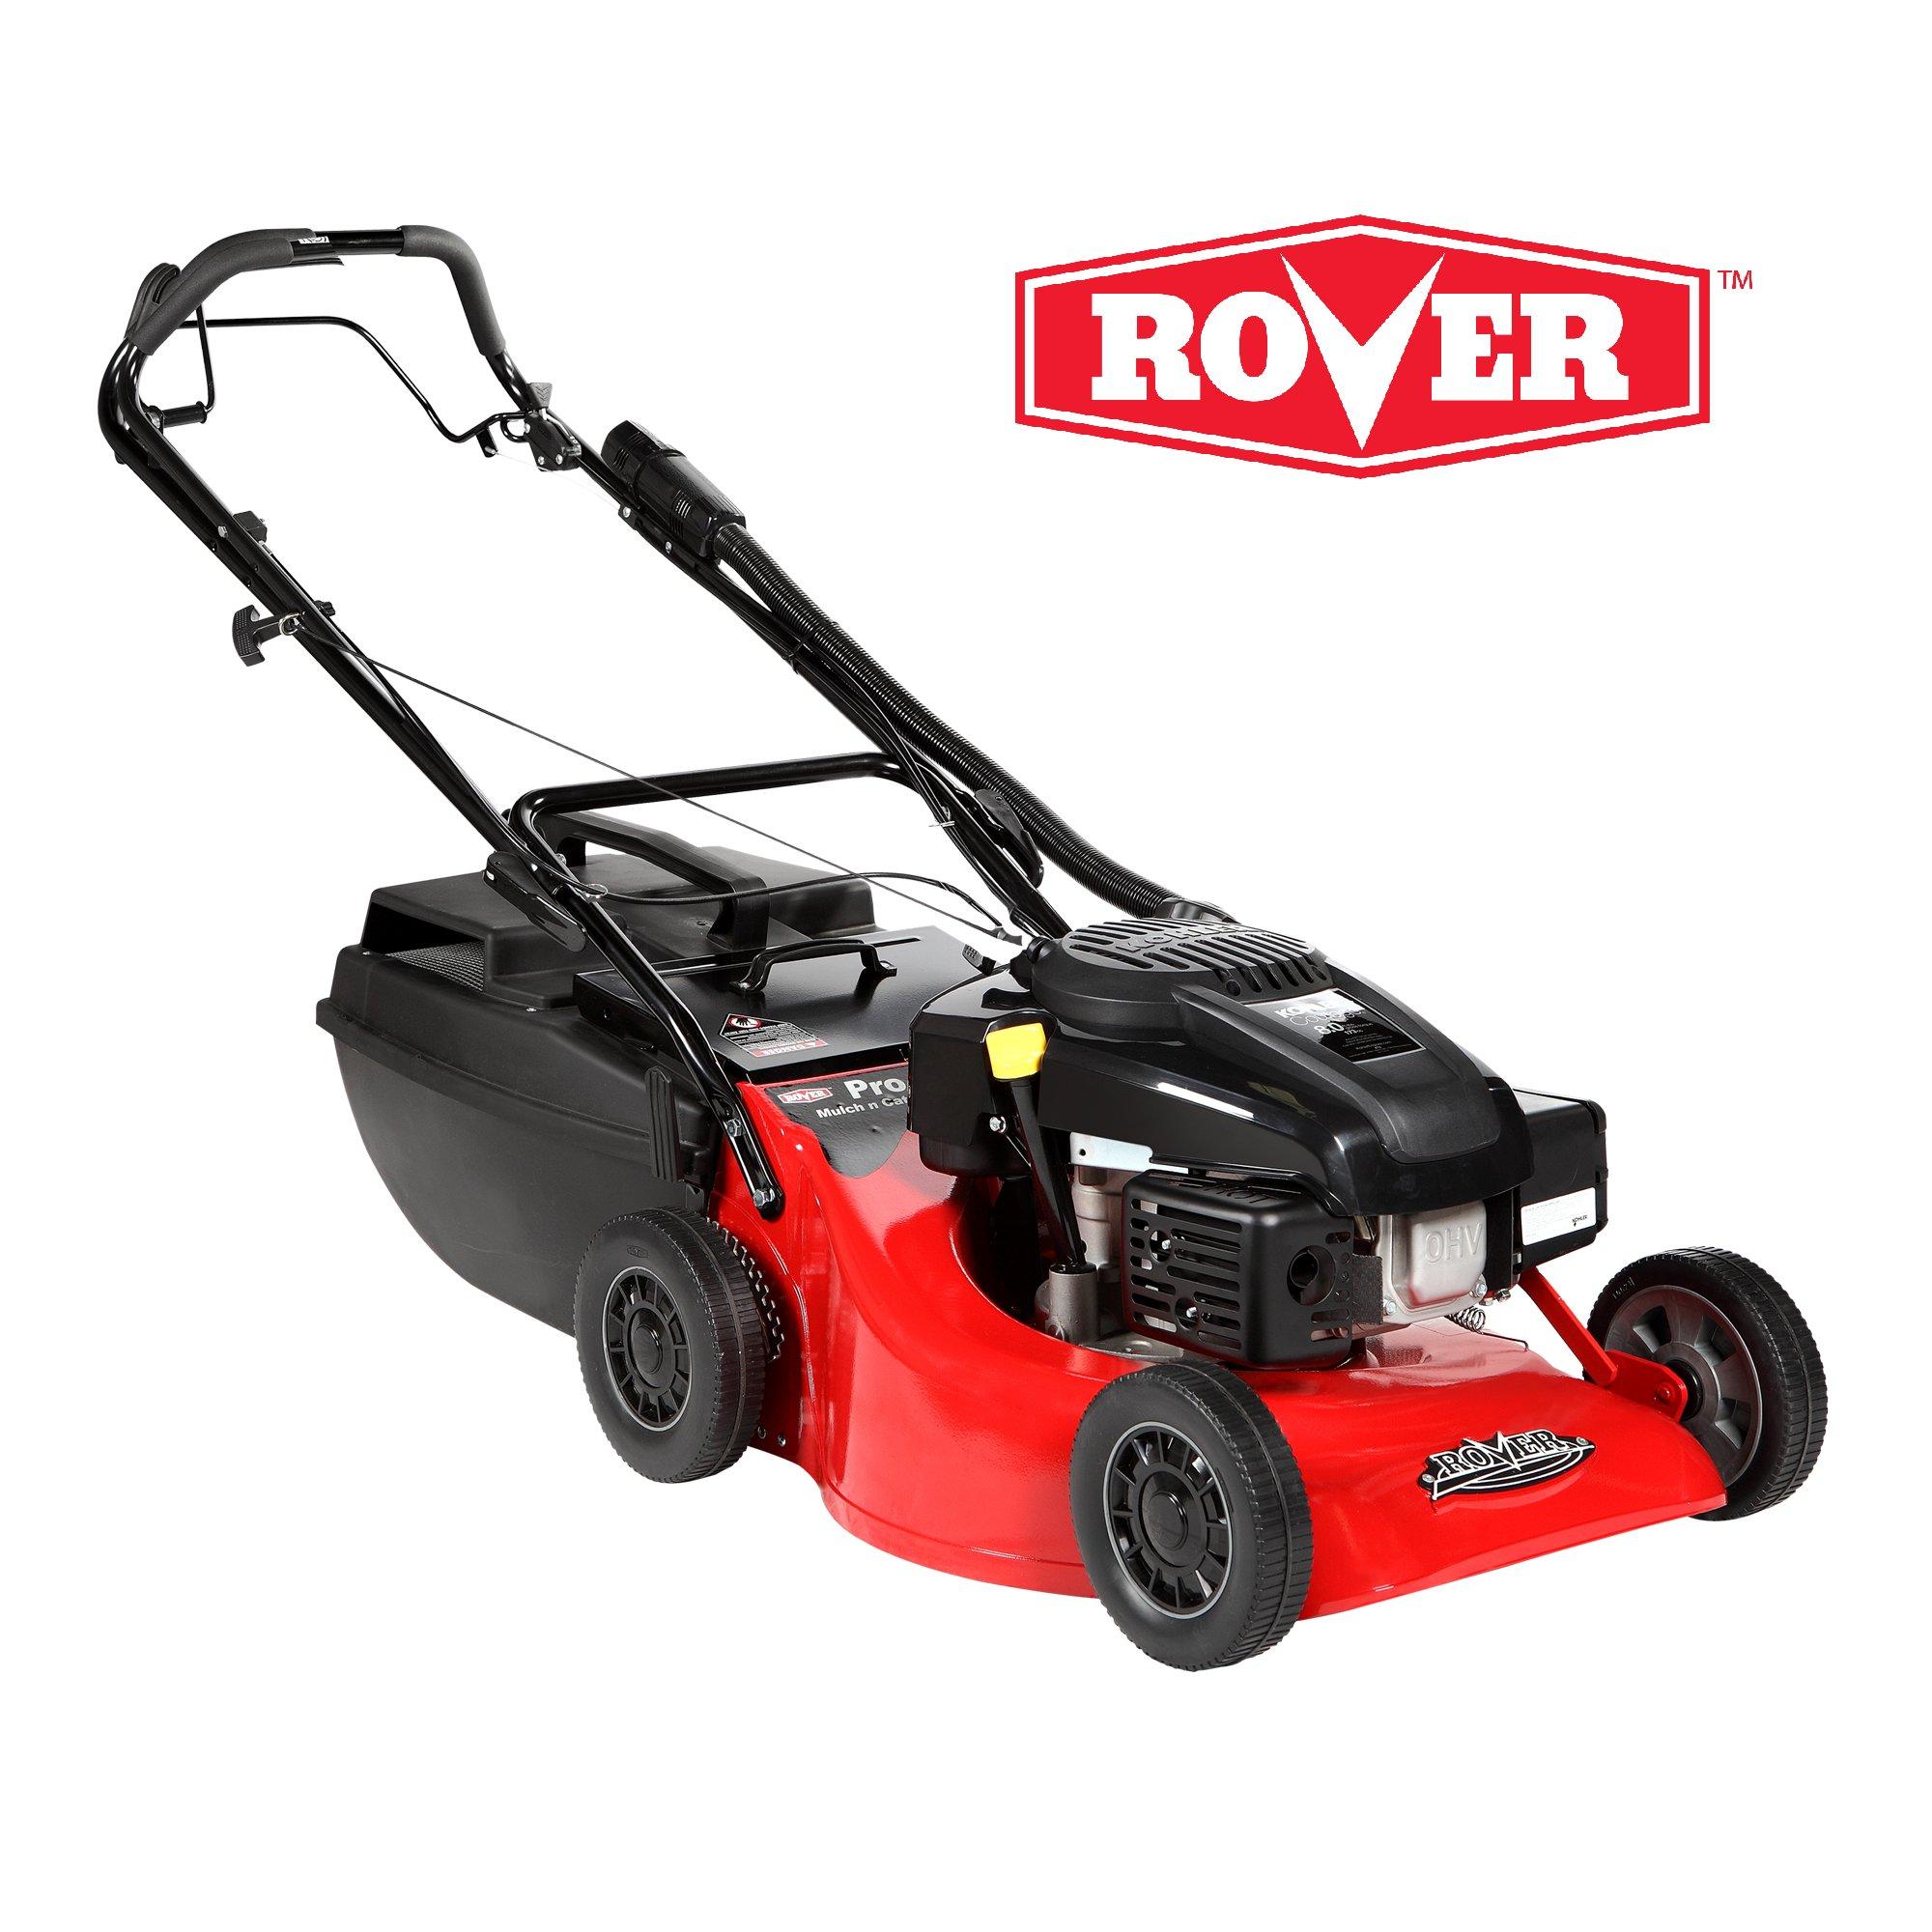 Rover Pro Cut 560 Lawn Mower Review Lawn Mower Wizard